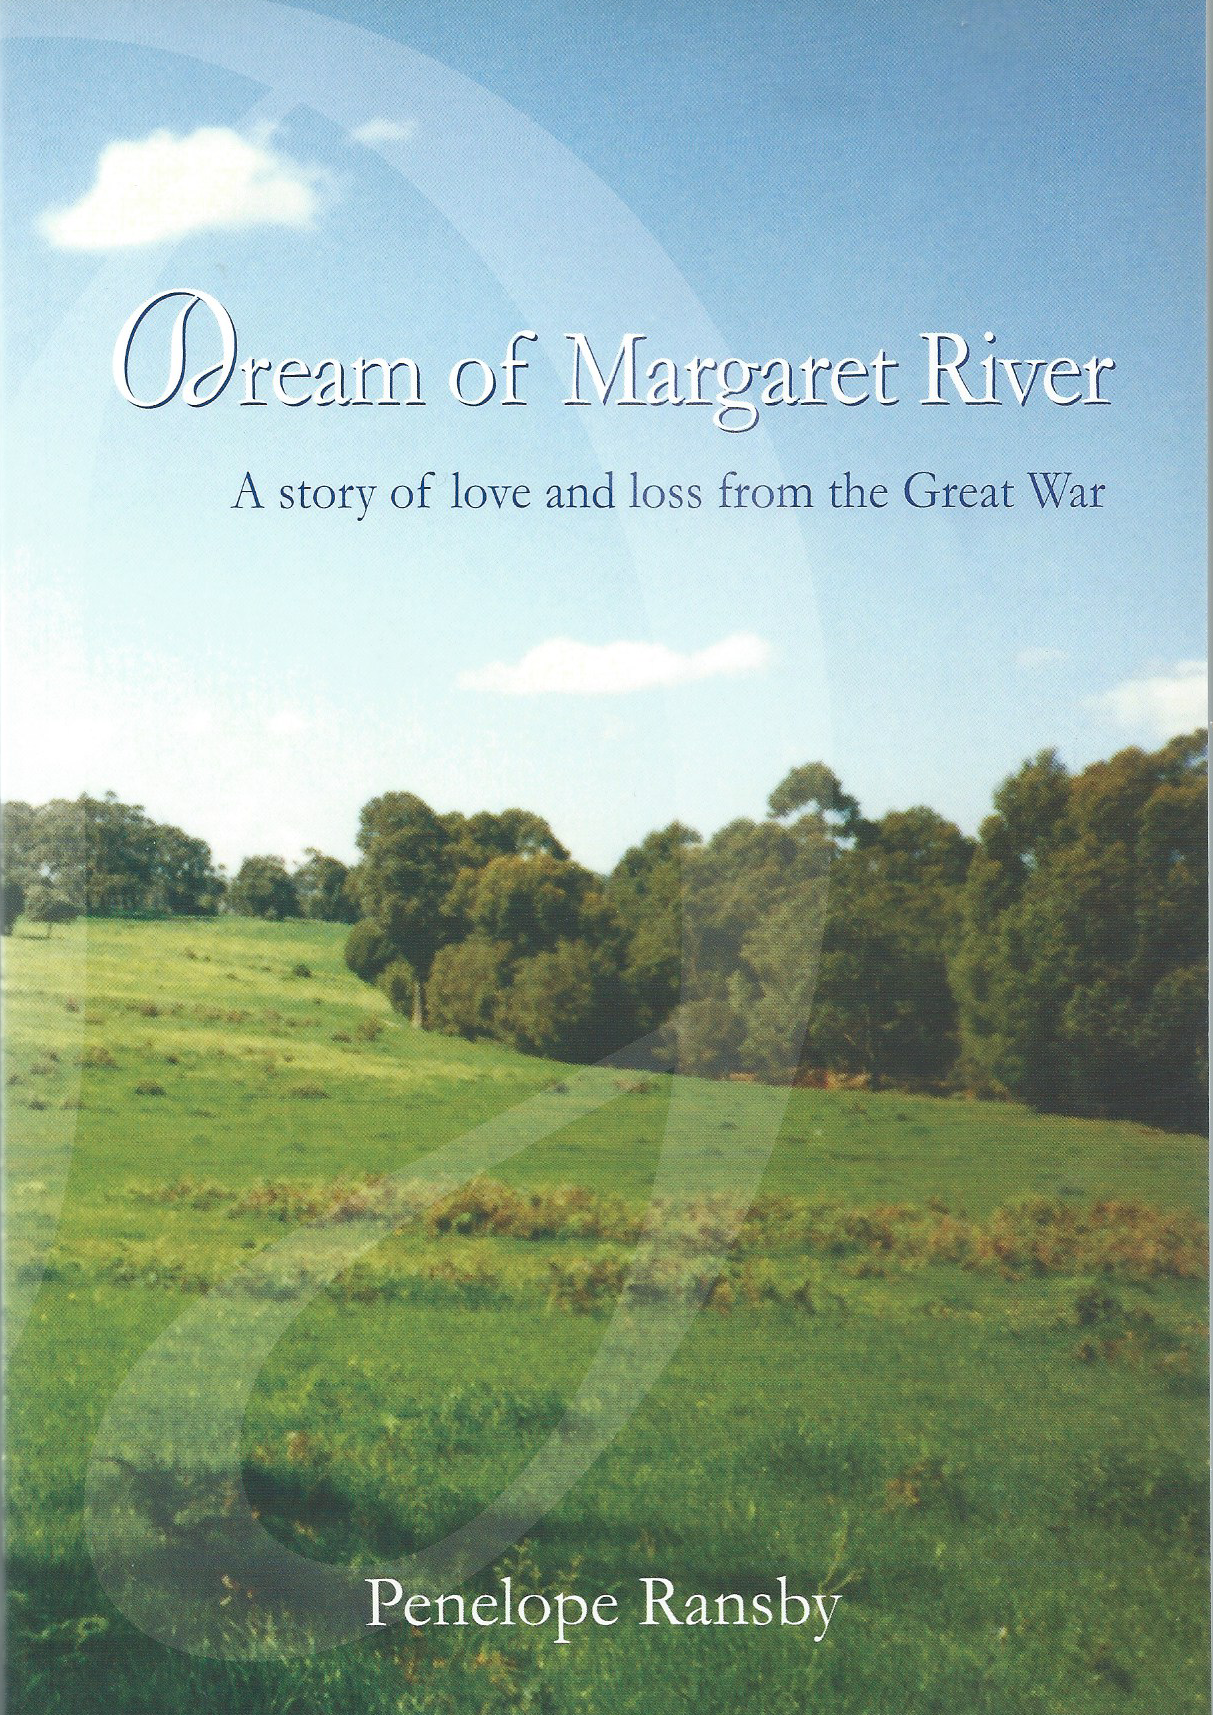 - Three young men started a farm at Margaret River when the south-west of Western Australia was being opened up to settlers in the early years of the last century. Life was hard in a pioneering community but Lance, Chris and Evelyn were optimistic and energetic and they loved it. Their future was full of promise. Then came the war. The Great War.This is their story.